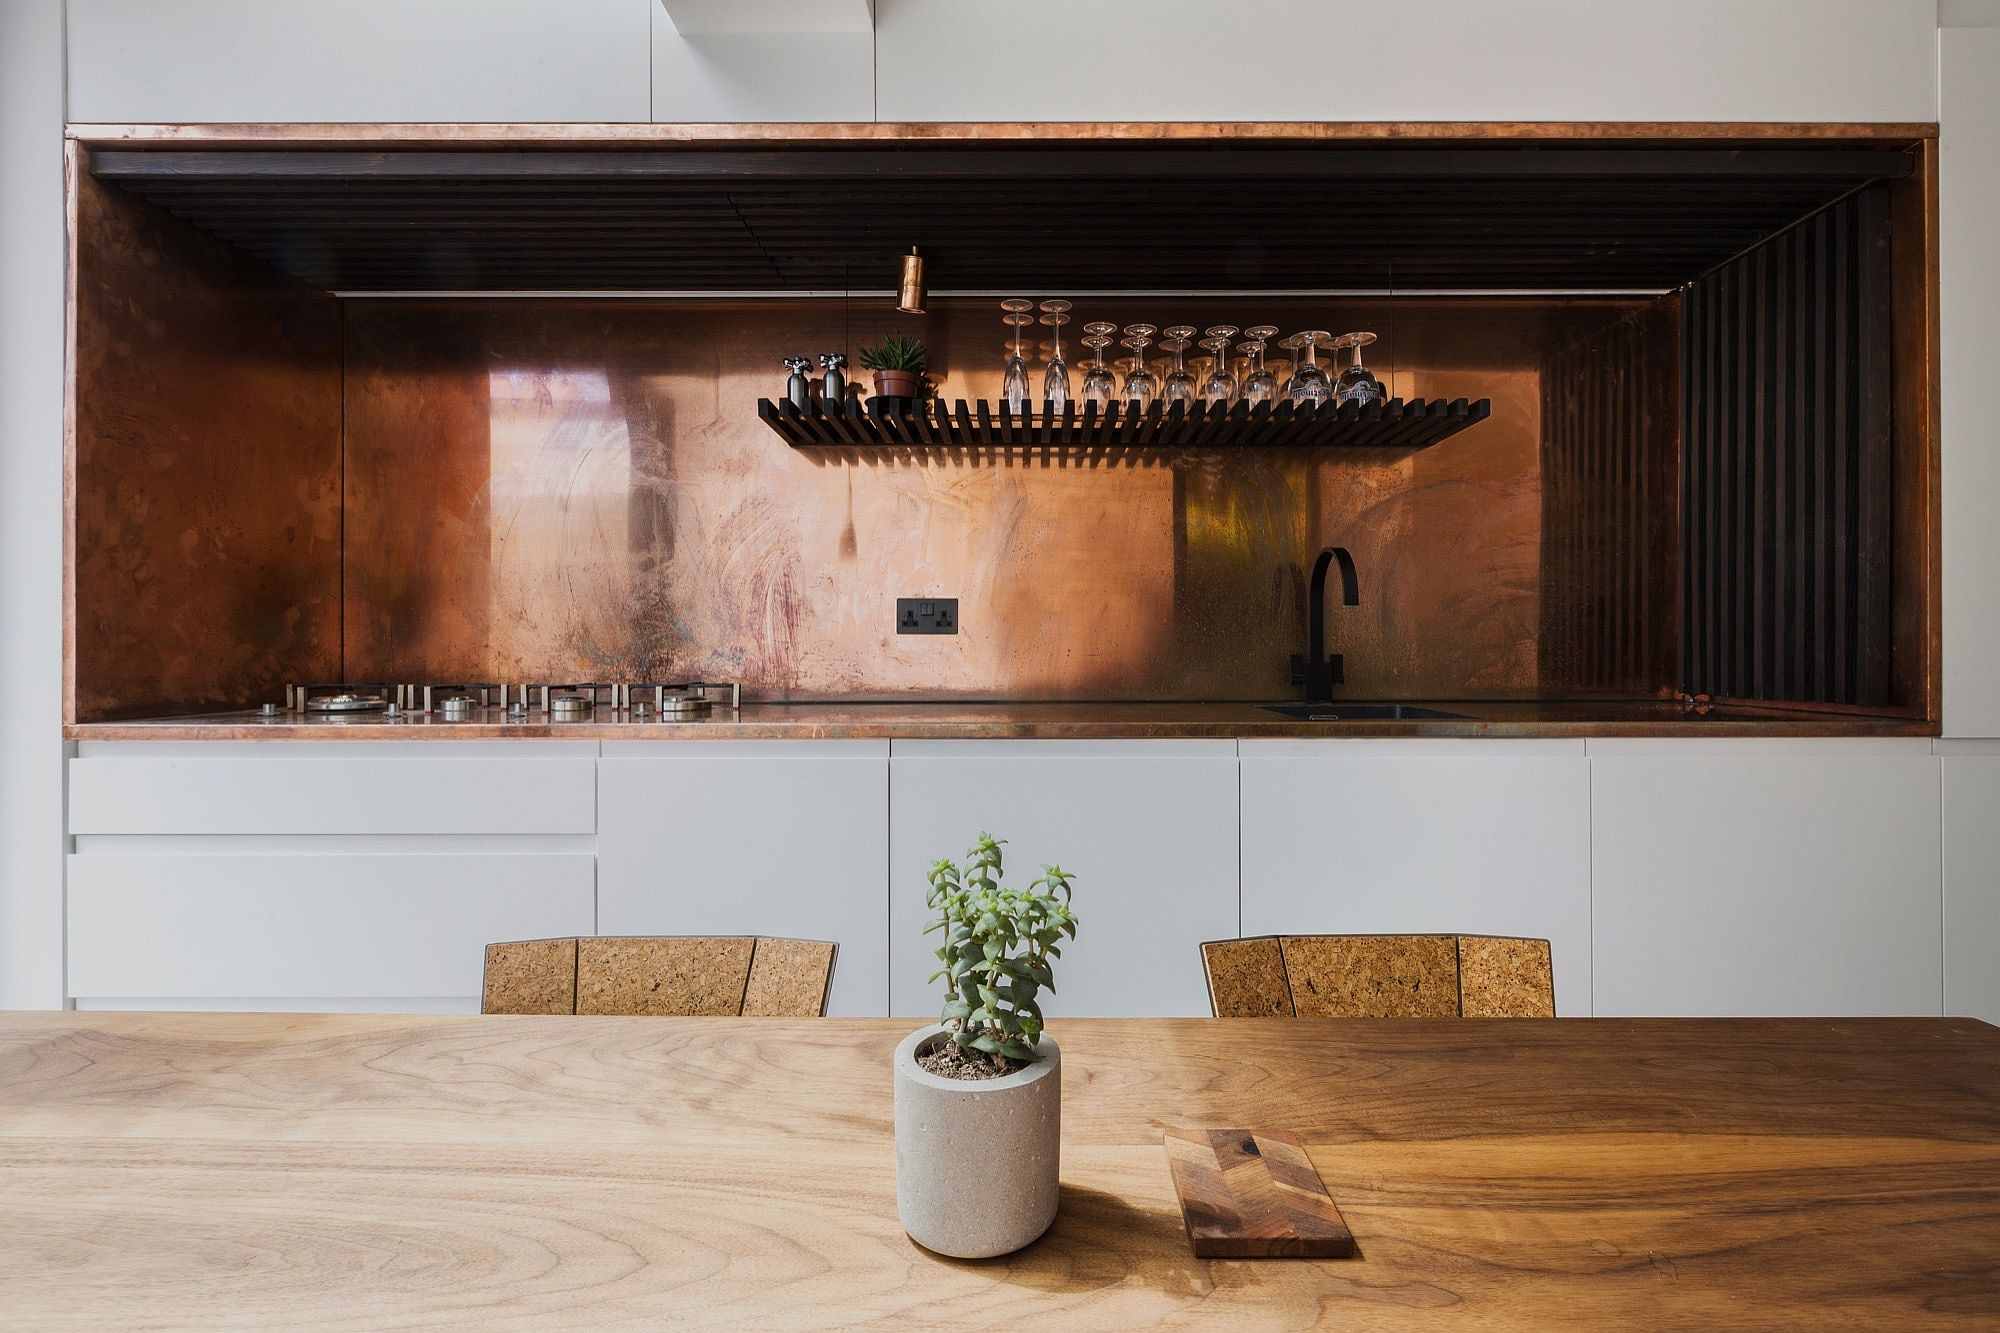 Exquisite kitchen workspace and backsplash in copper along with charred larch slats